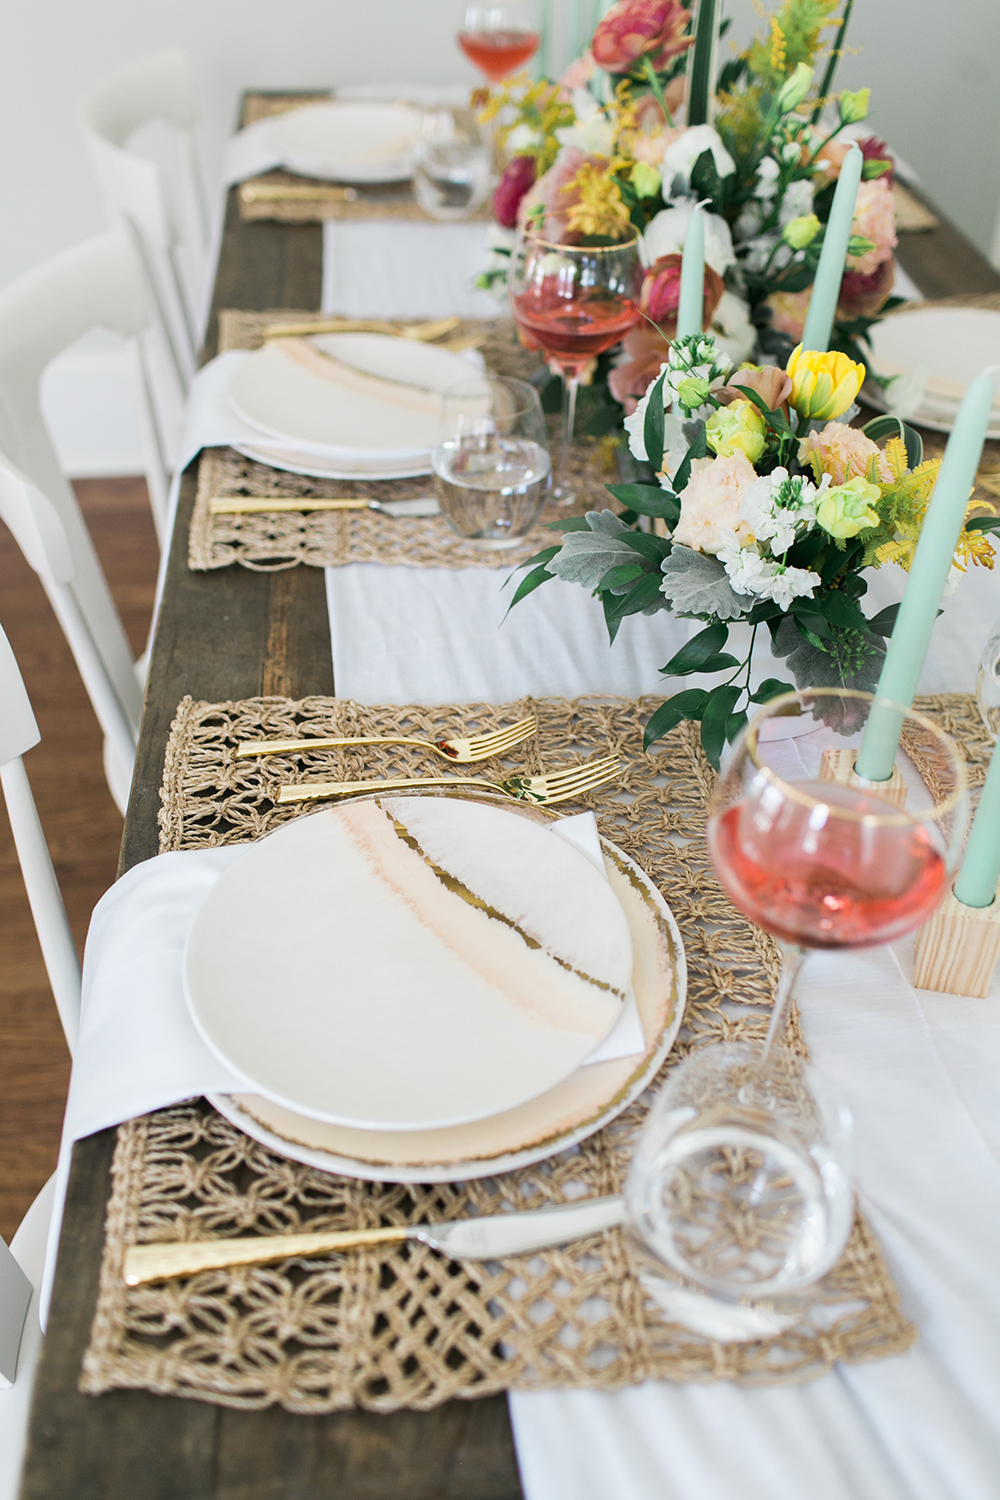 floral tablescapes - http://ruffledblog.com/design-your-first-home-together-with-bloomingdales-registry